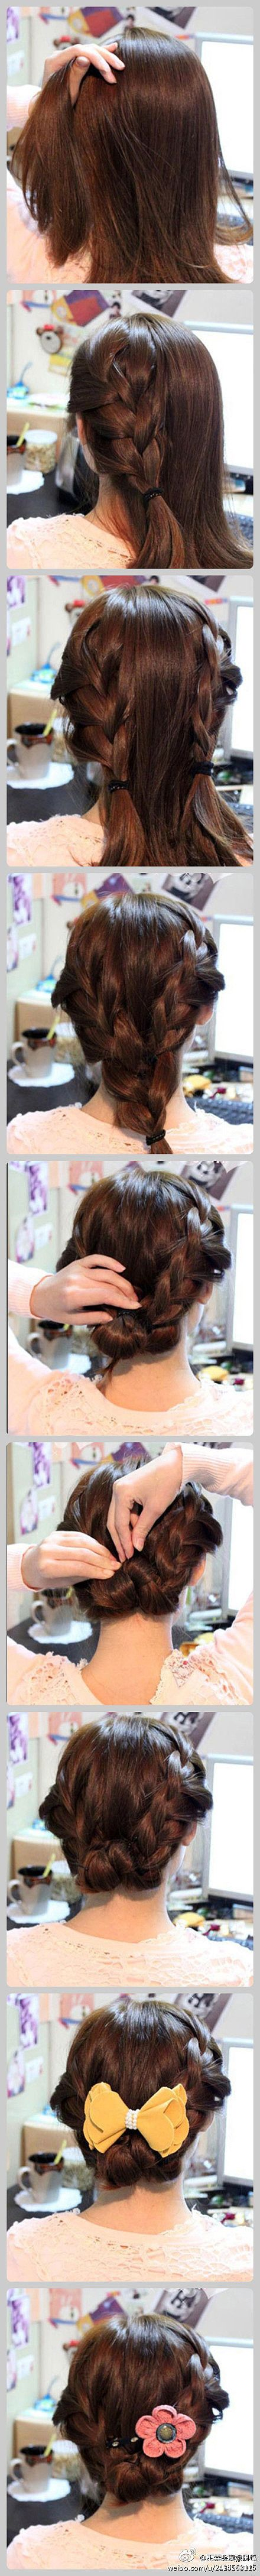 Pretty Braided Hair Style for medium length hair. I think I have a month or two before to I can do this!